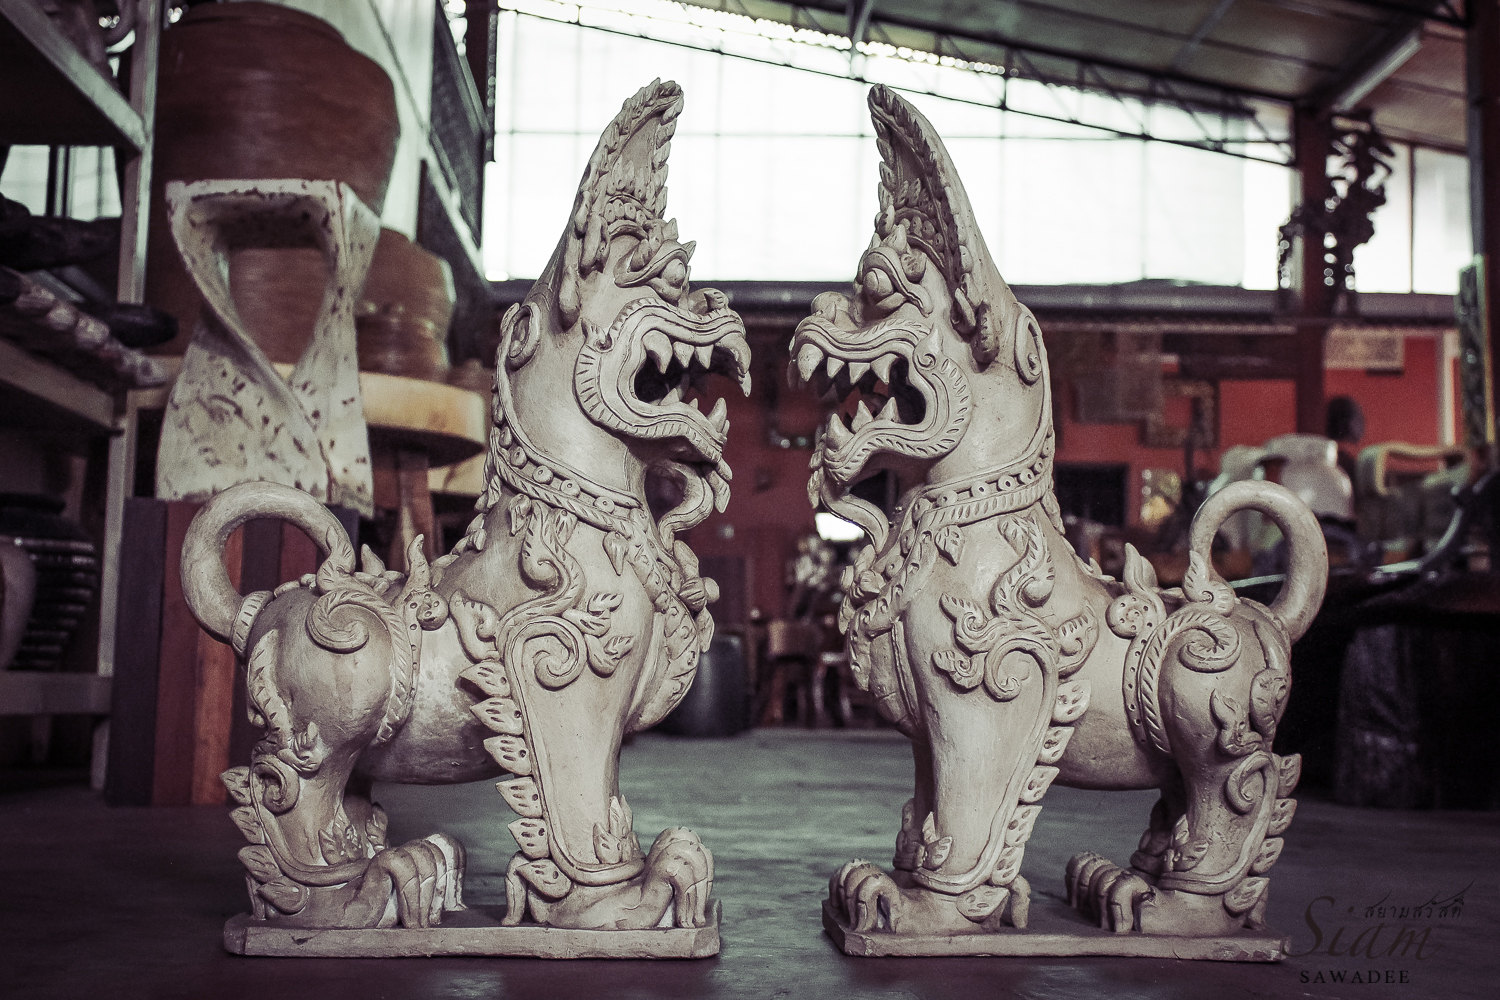 Particular Ceramic Temple Guardians Dragon Dogs Foo Or Singha Protect Thai Foo Buy Thai Foo Singha Ceramic Statues Pair Online Foo Dog Statue Concrete Foo Dog Statue Amazon houzz 01 Foo Dog Statue